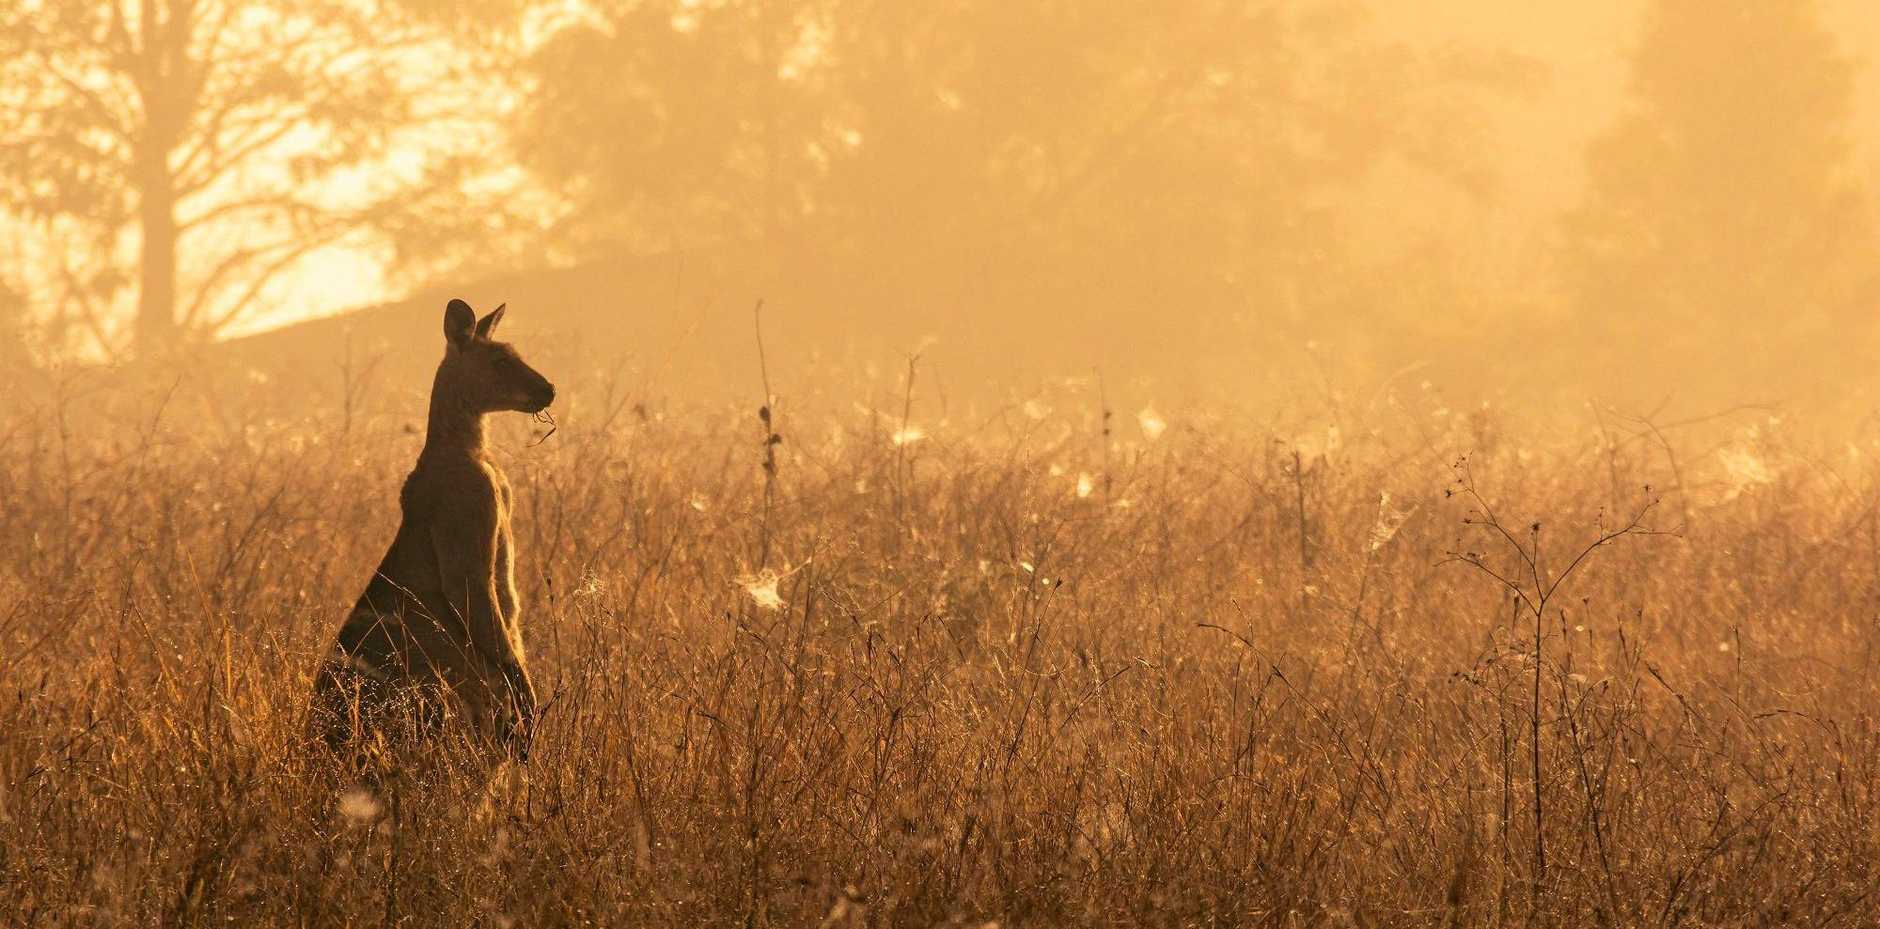 Lazy Hazy Afternoon , winner of the Native Wildlife Category.